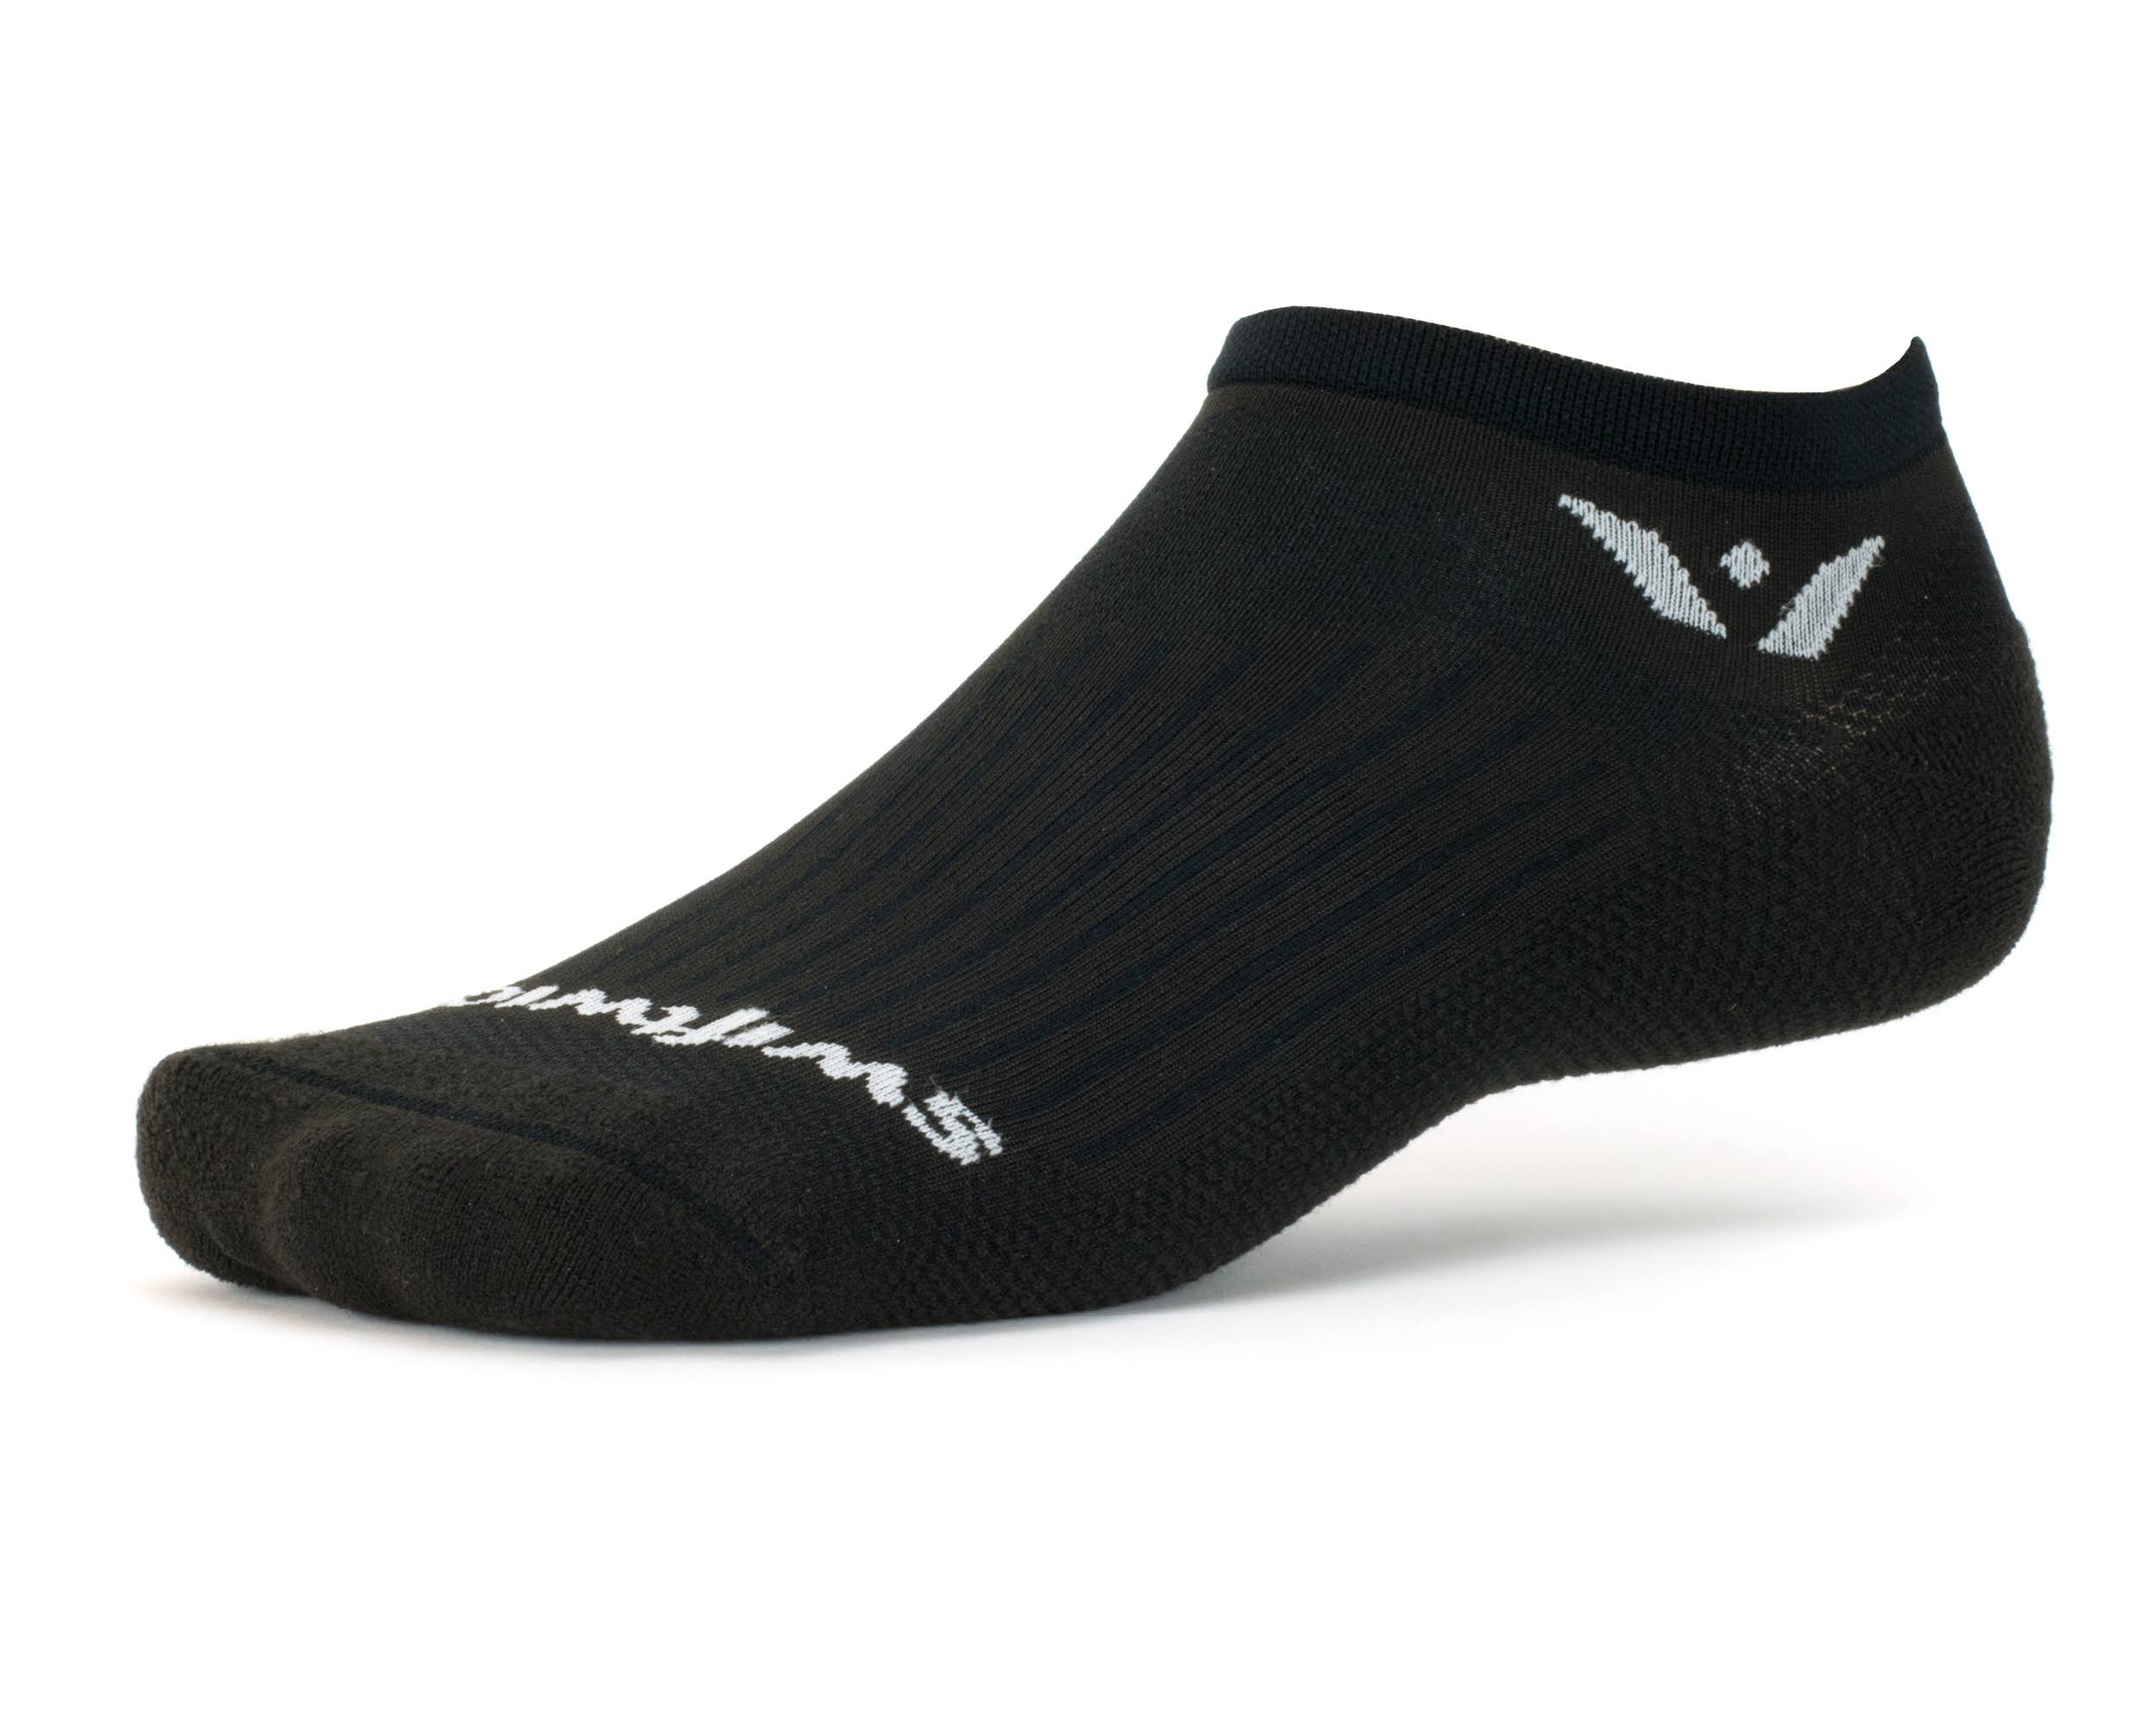 Swiftwick Zero Aspire Socks - Black